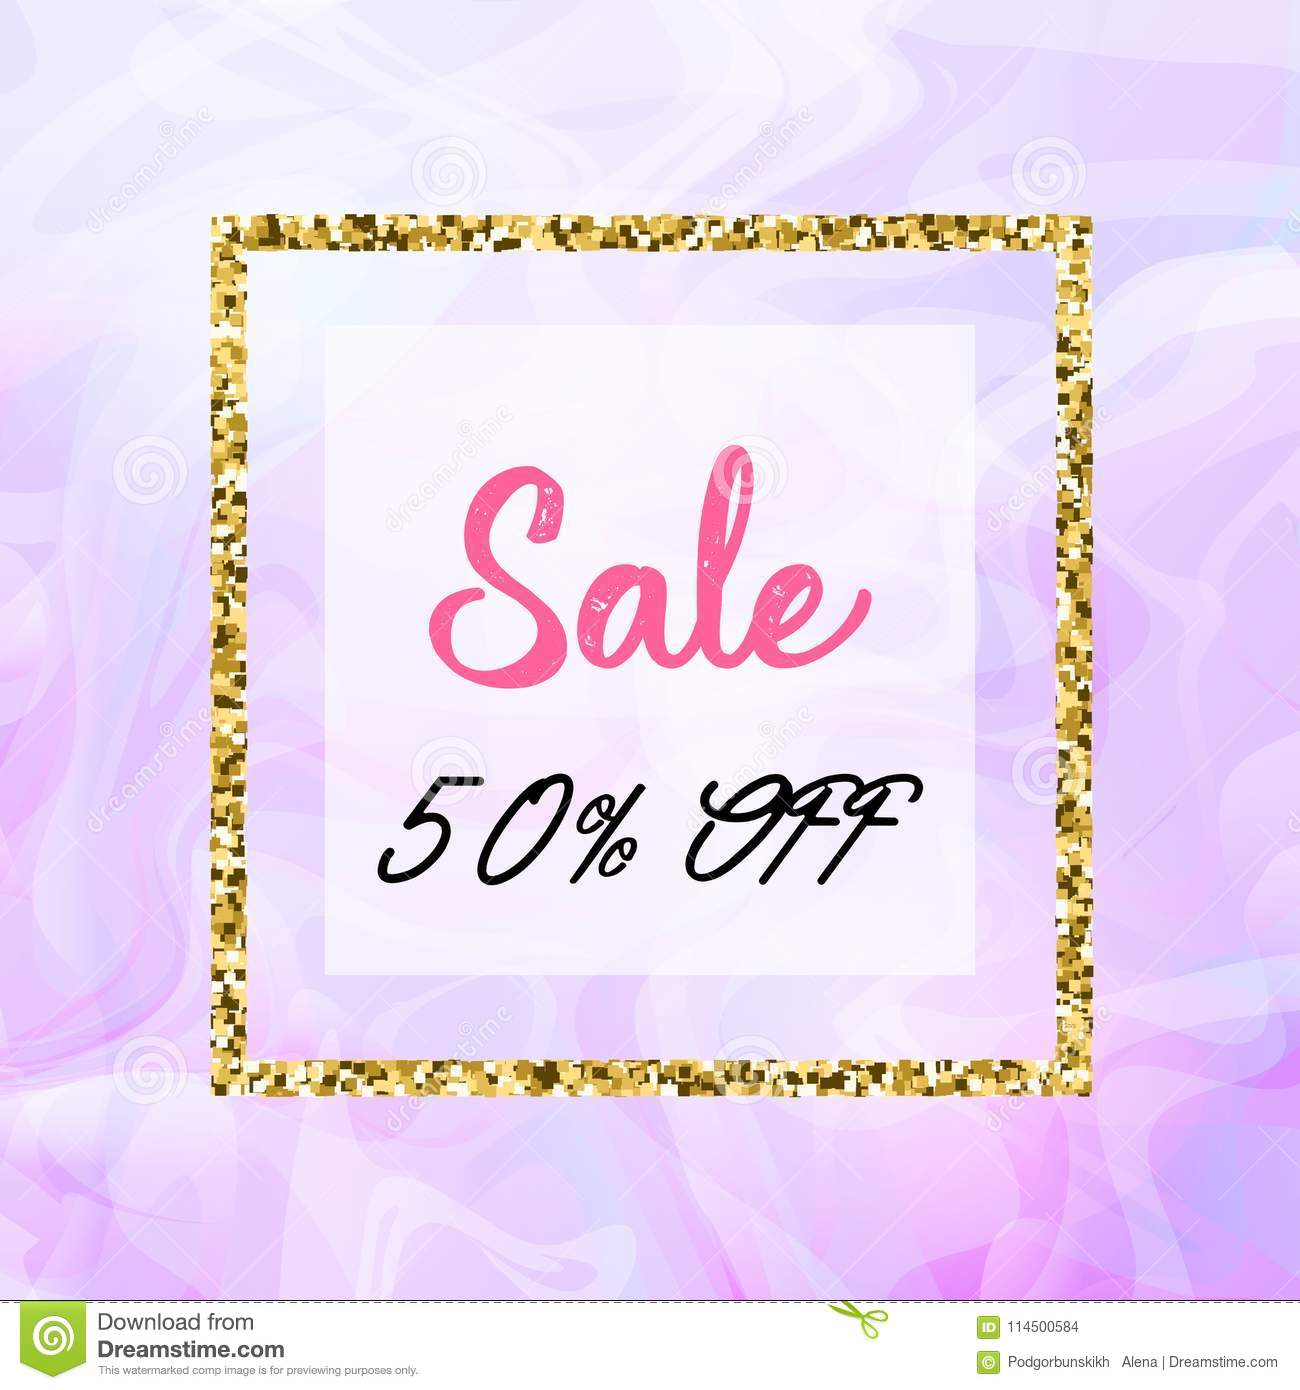 Summer Sale Design For Banner Poster With Marble Texture And Gold Detail Clearance Sale Square Pink And Gold Banner Stock Vector Illustration Of Decoration Invitation 114500584